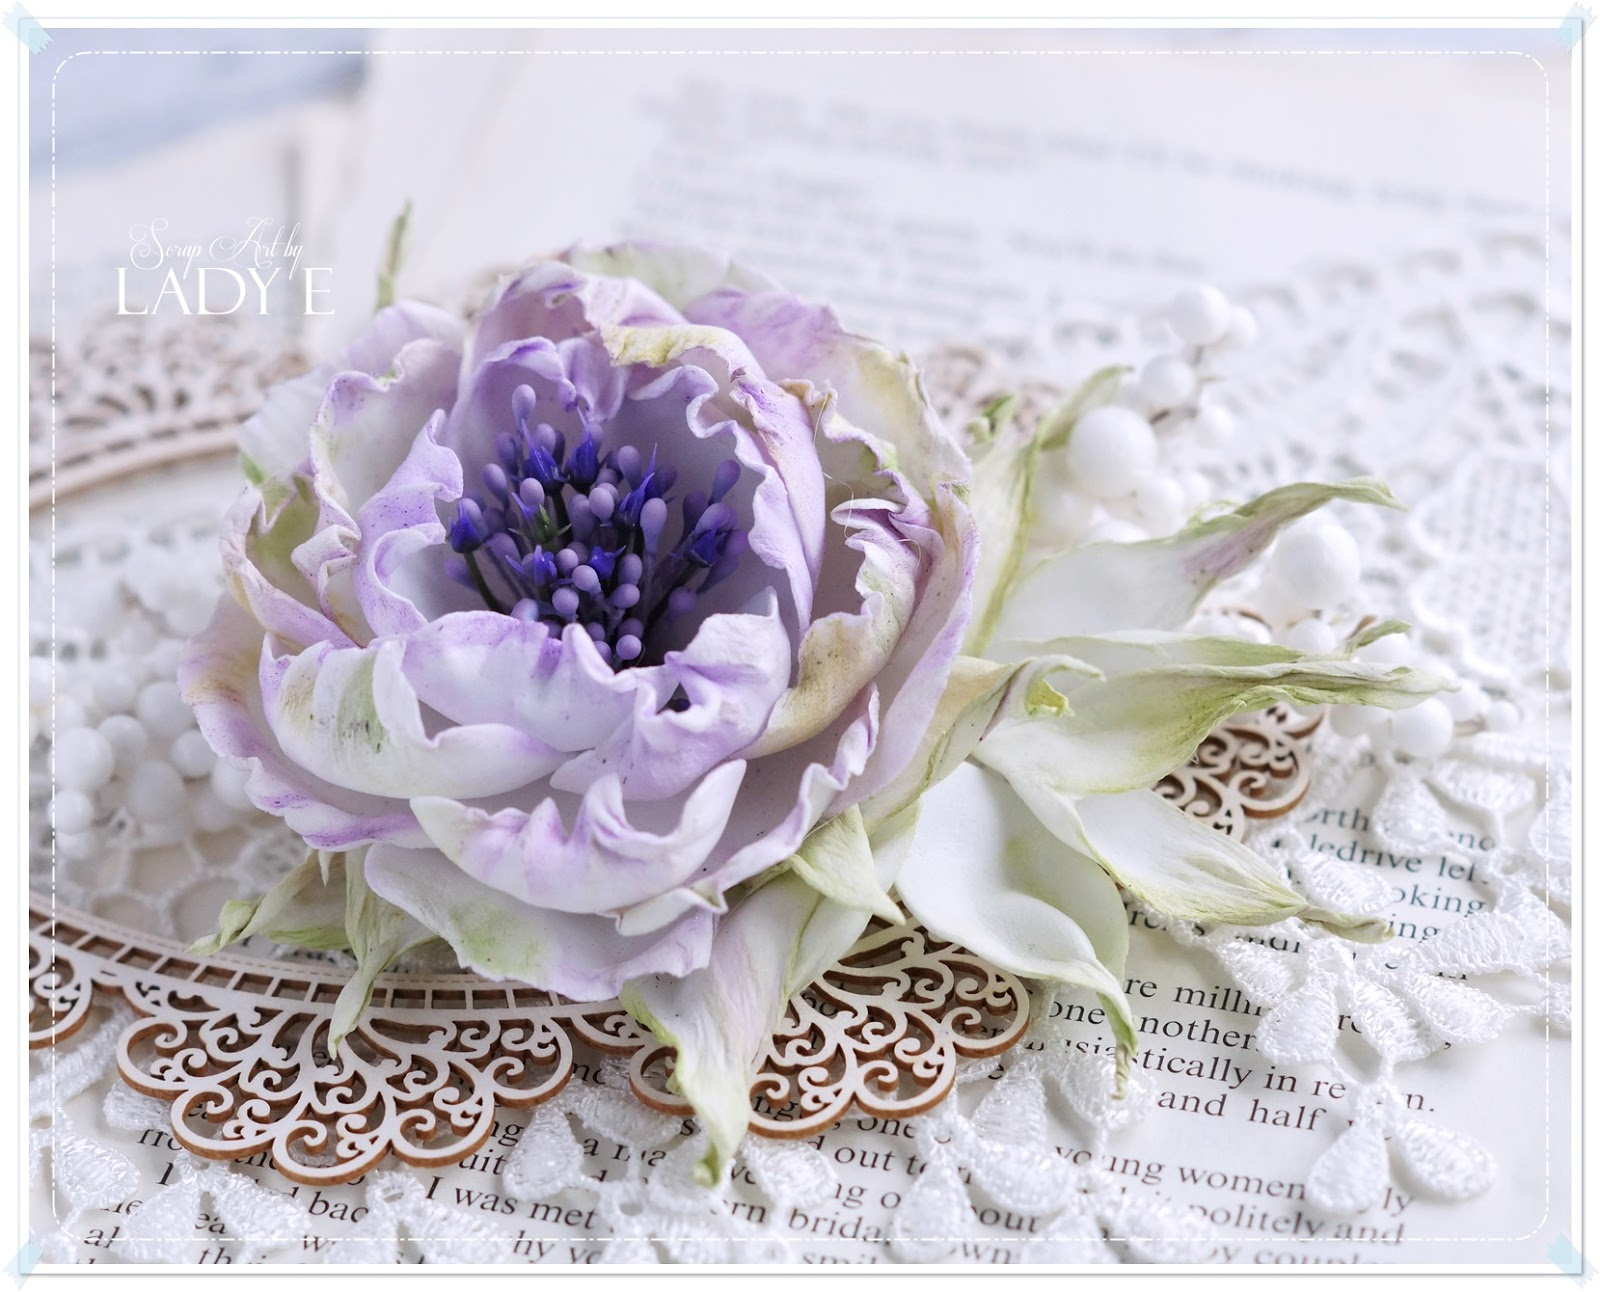 Silk foam shabby chic flower video tutorial scrap art by lady e the flower could be used as a brooch hair clip or embellish your home decor izmirmasajfo